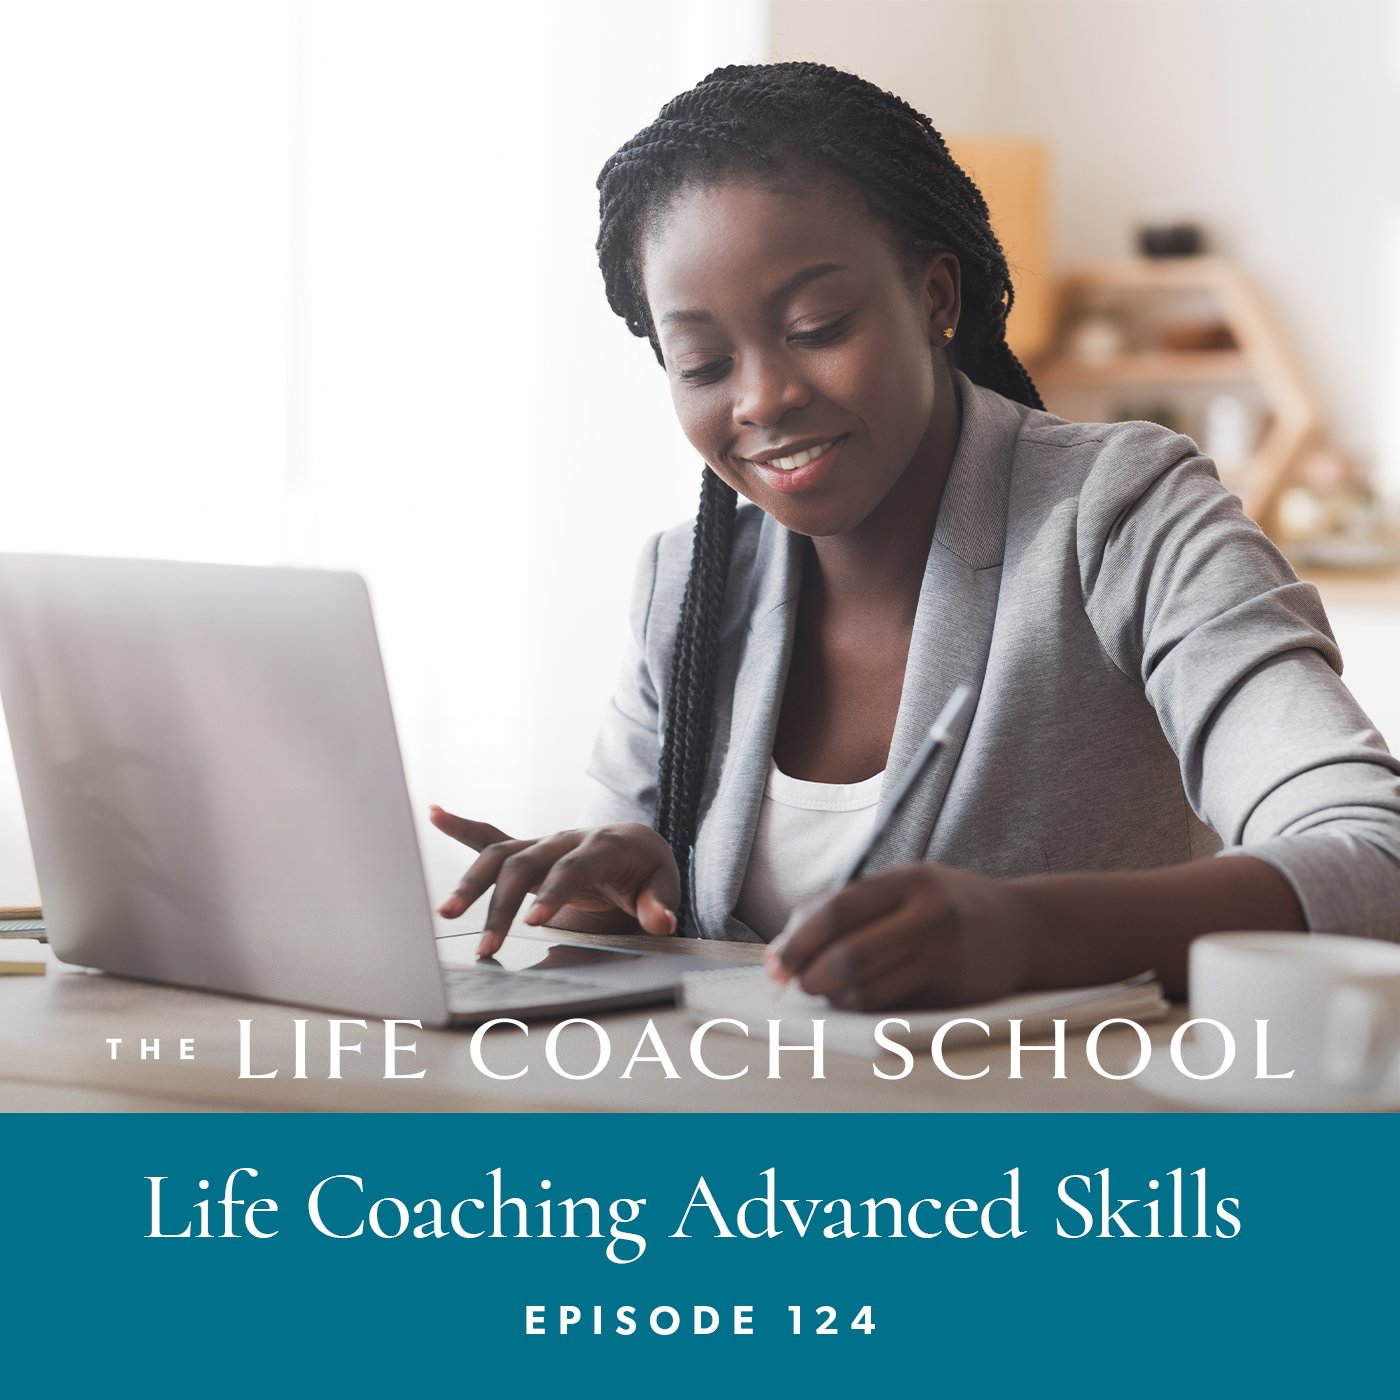 The Life Coach School Podcast with Brooke Castillo | Episode 124 | Life Coaching Advanced Skills